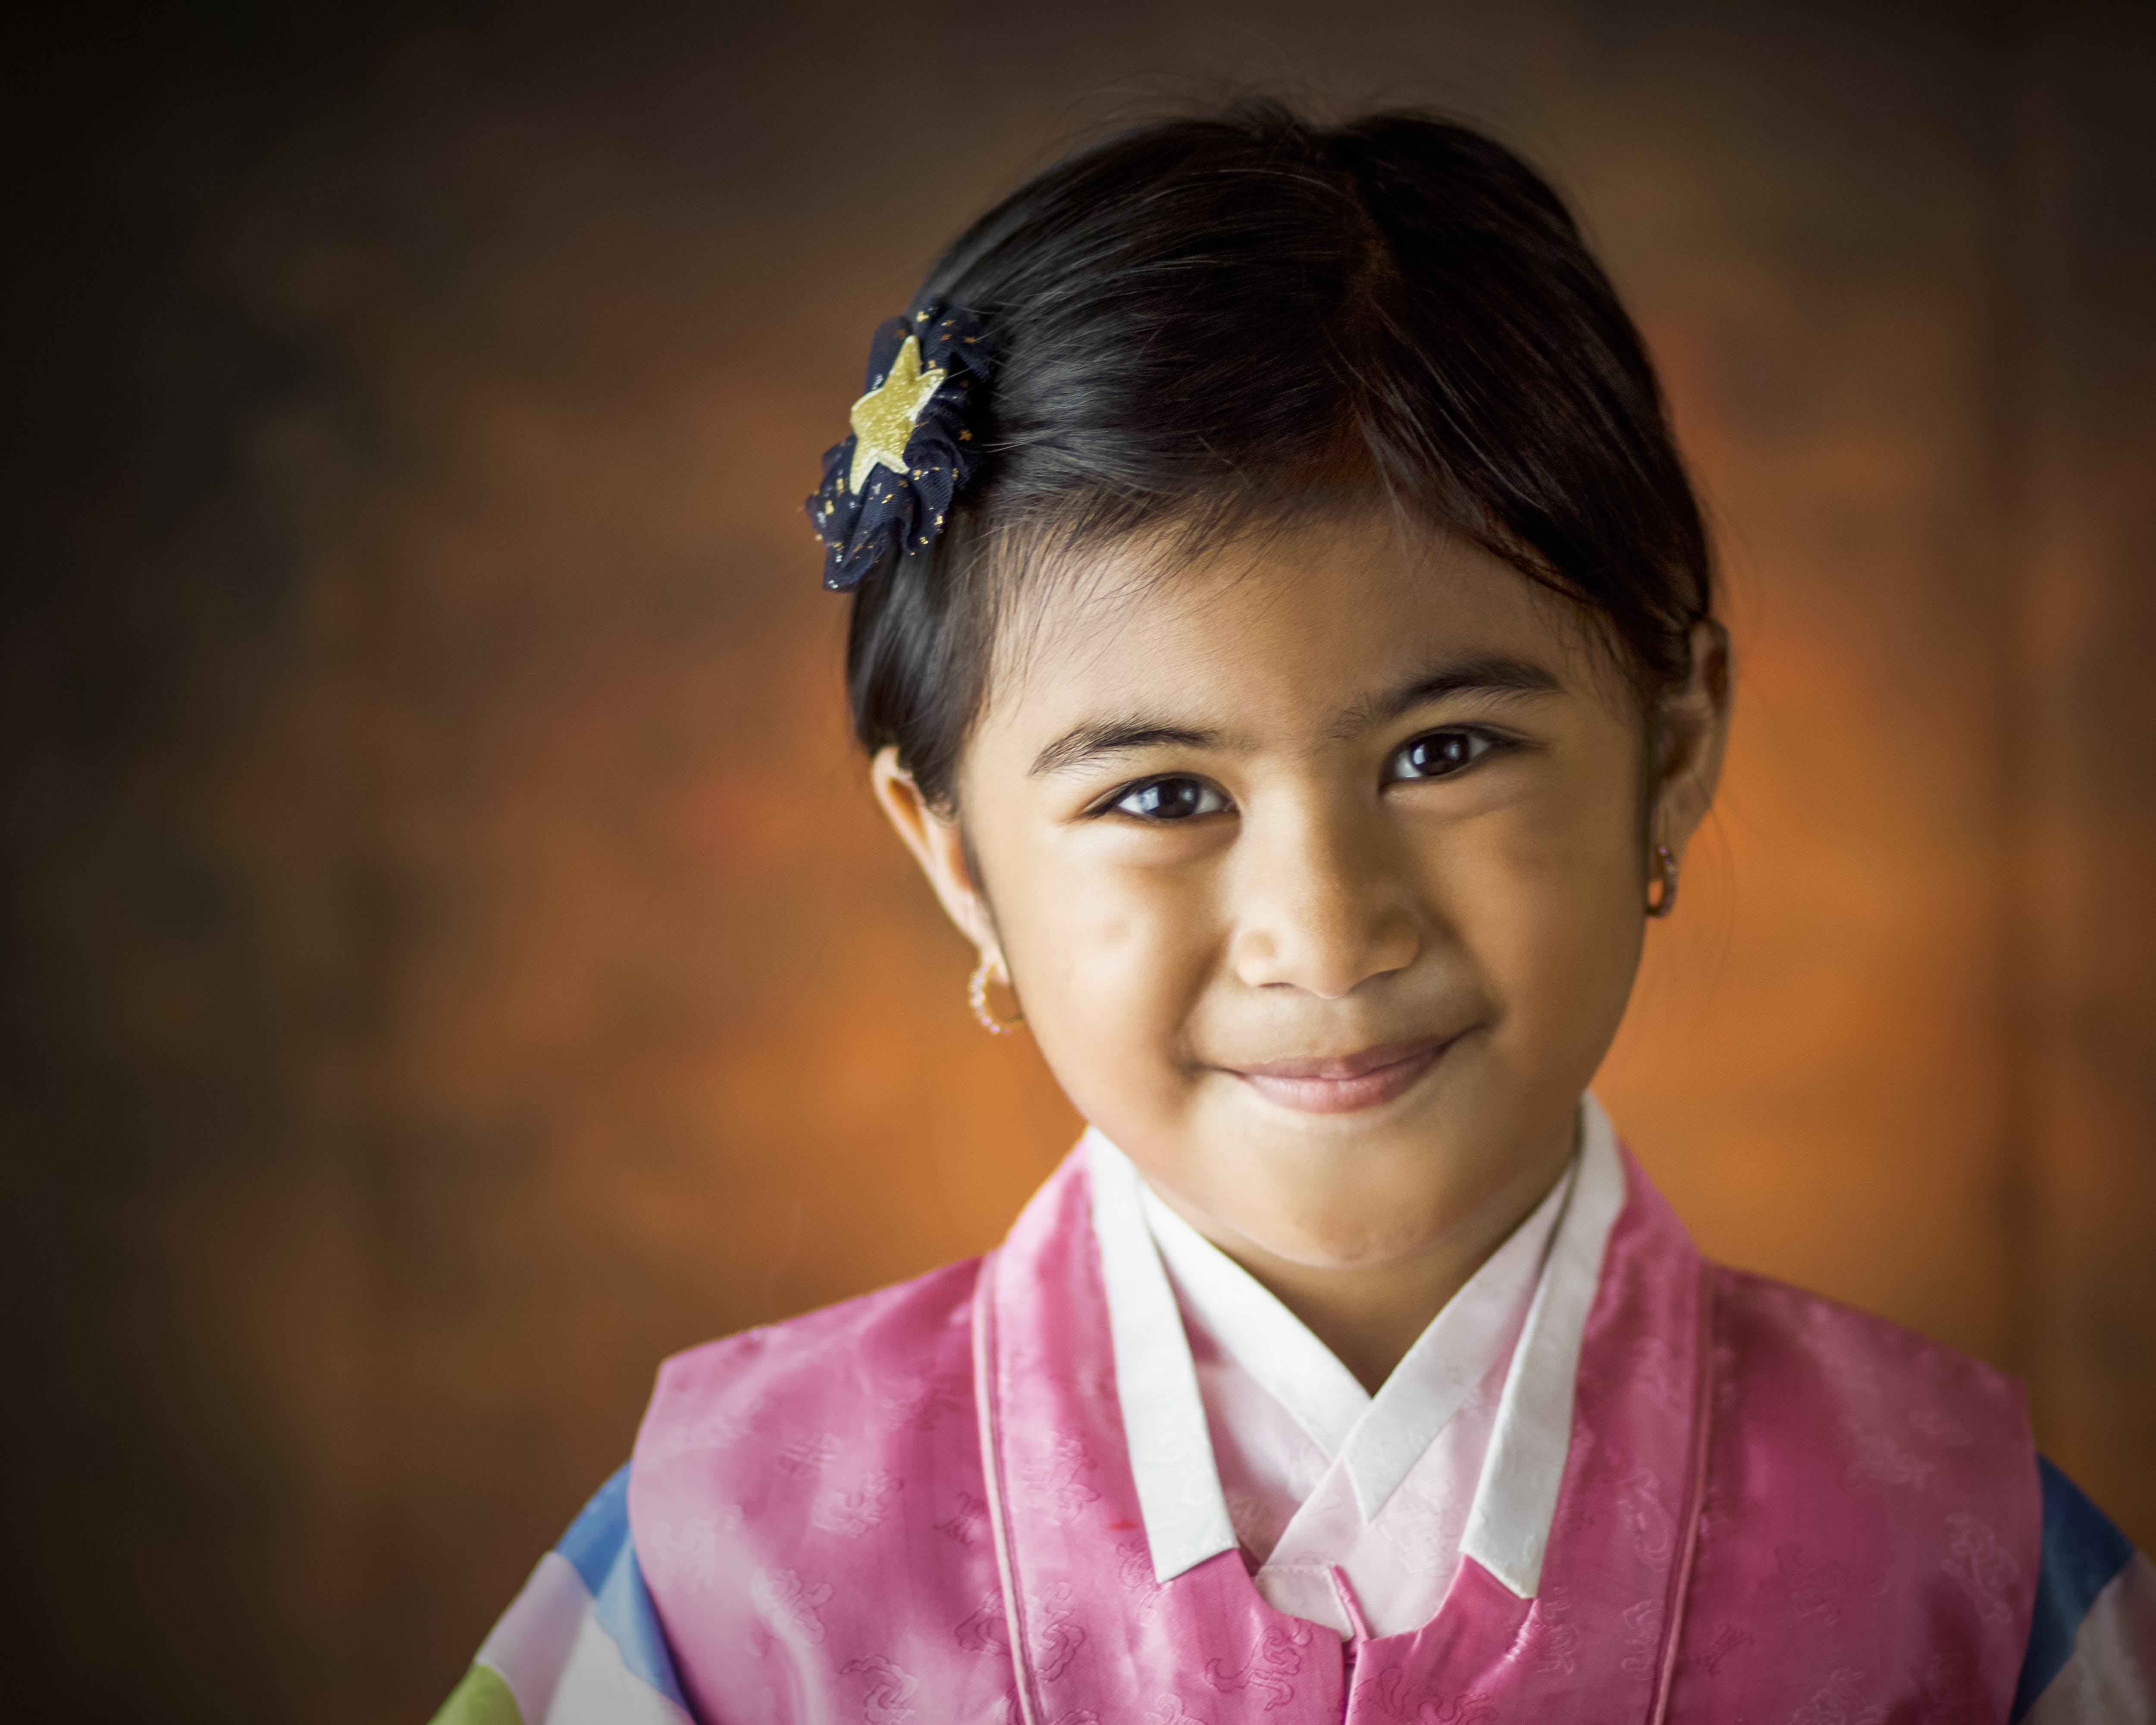 Girl Wearing Pink Hanbok Dress